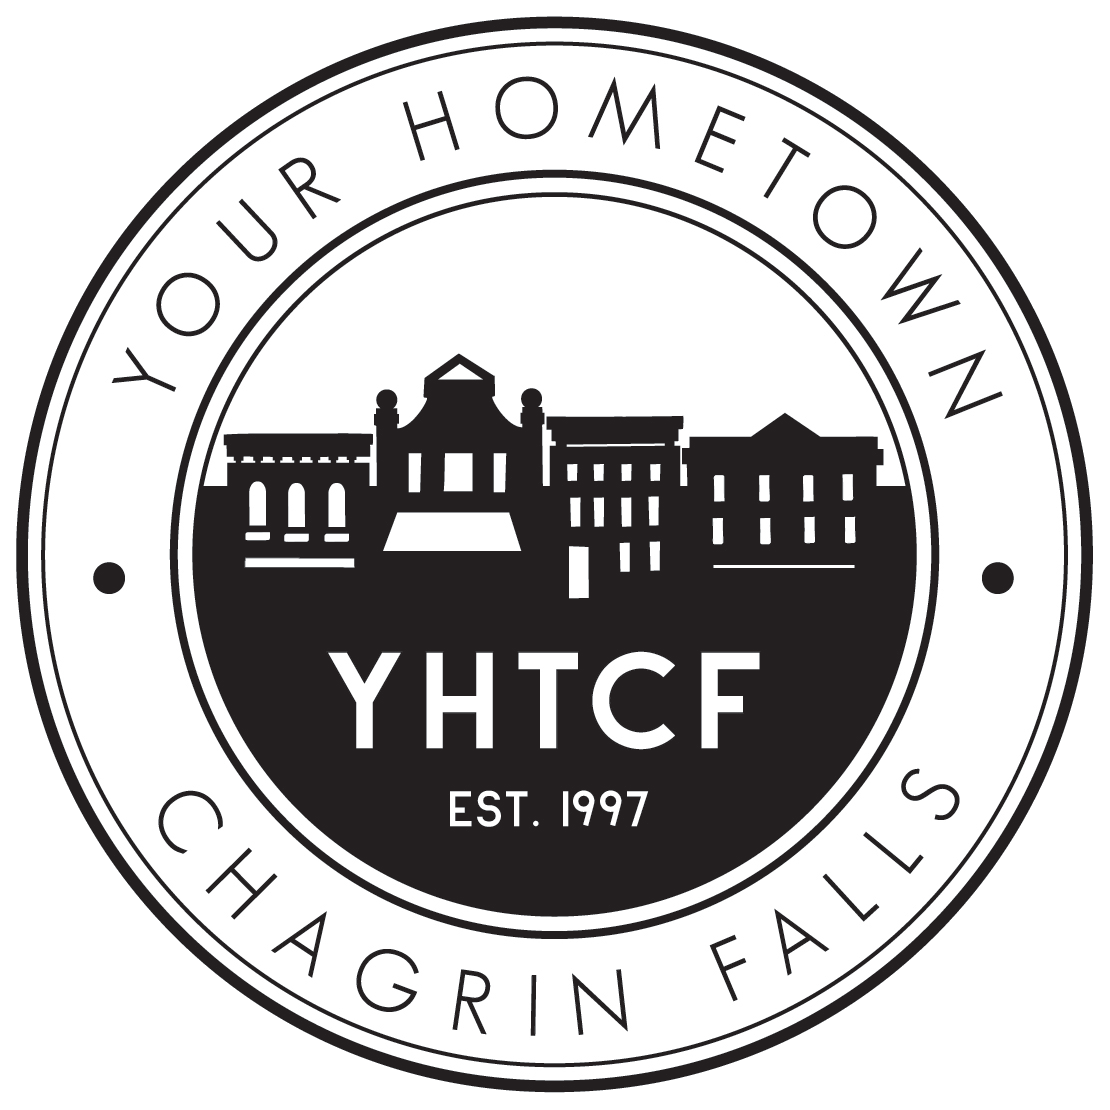 shop your hometown chagrin falls